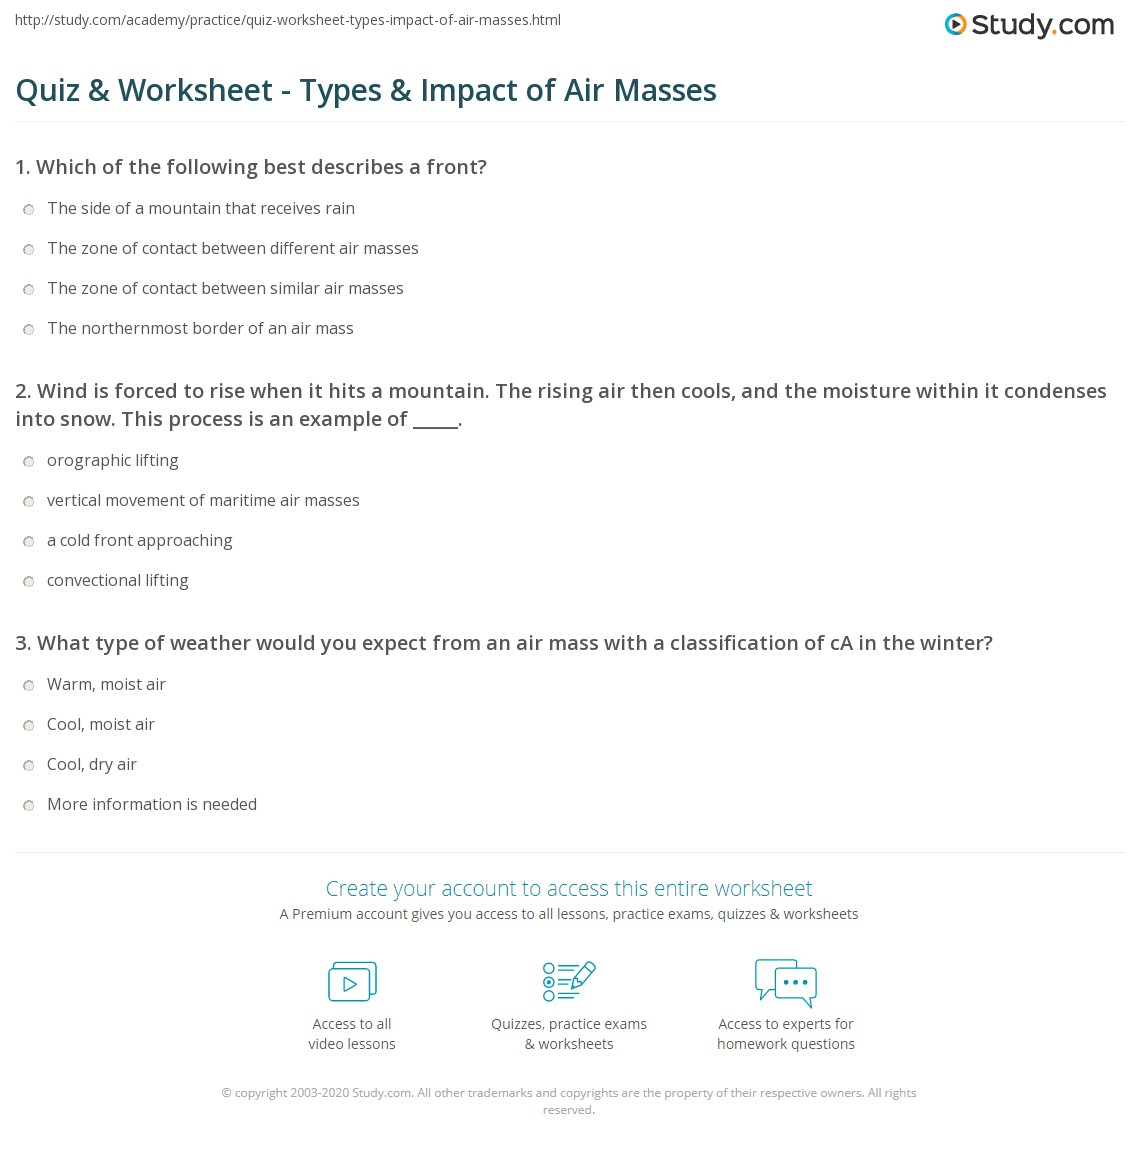 Quiz & Worksheet - Types & Impact of Air Masses | Study.com